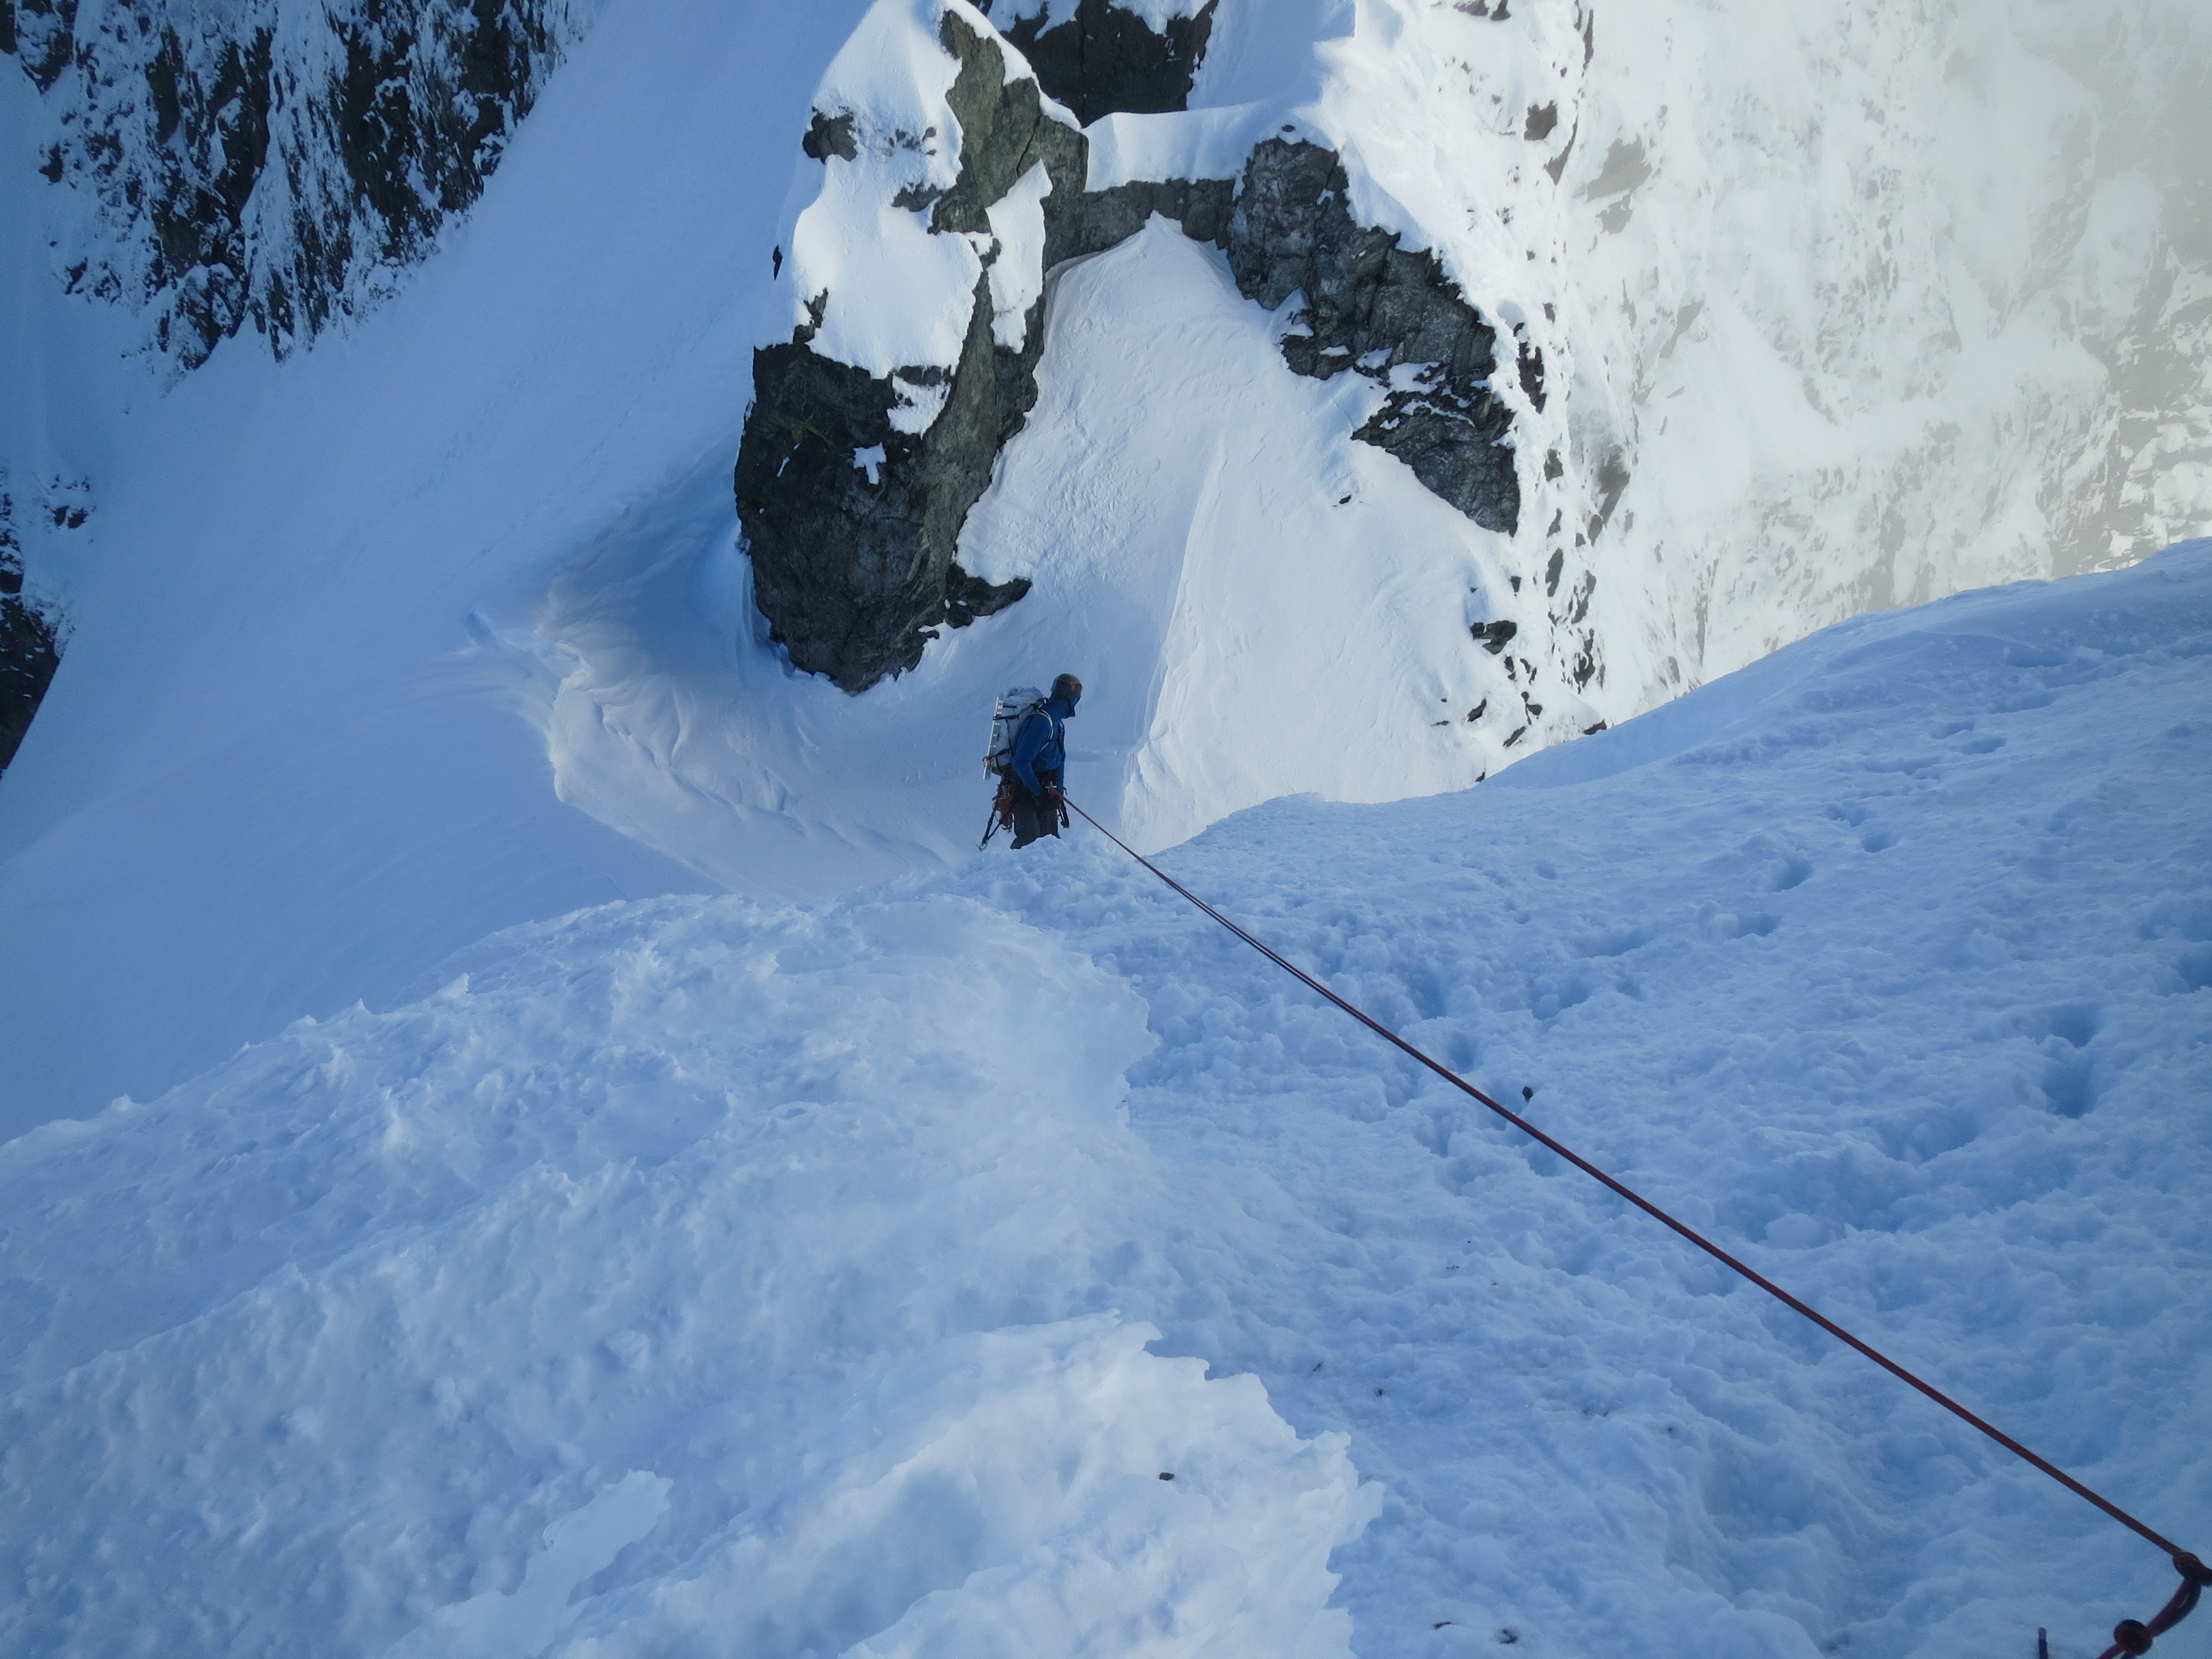 Liam rapping into the col at the top of our descent gully